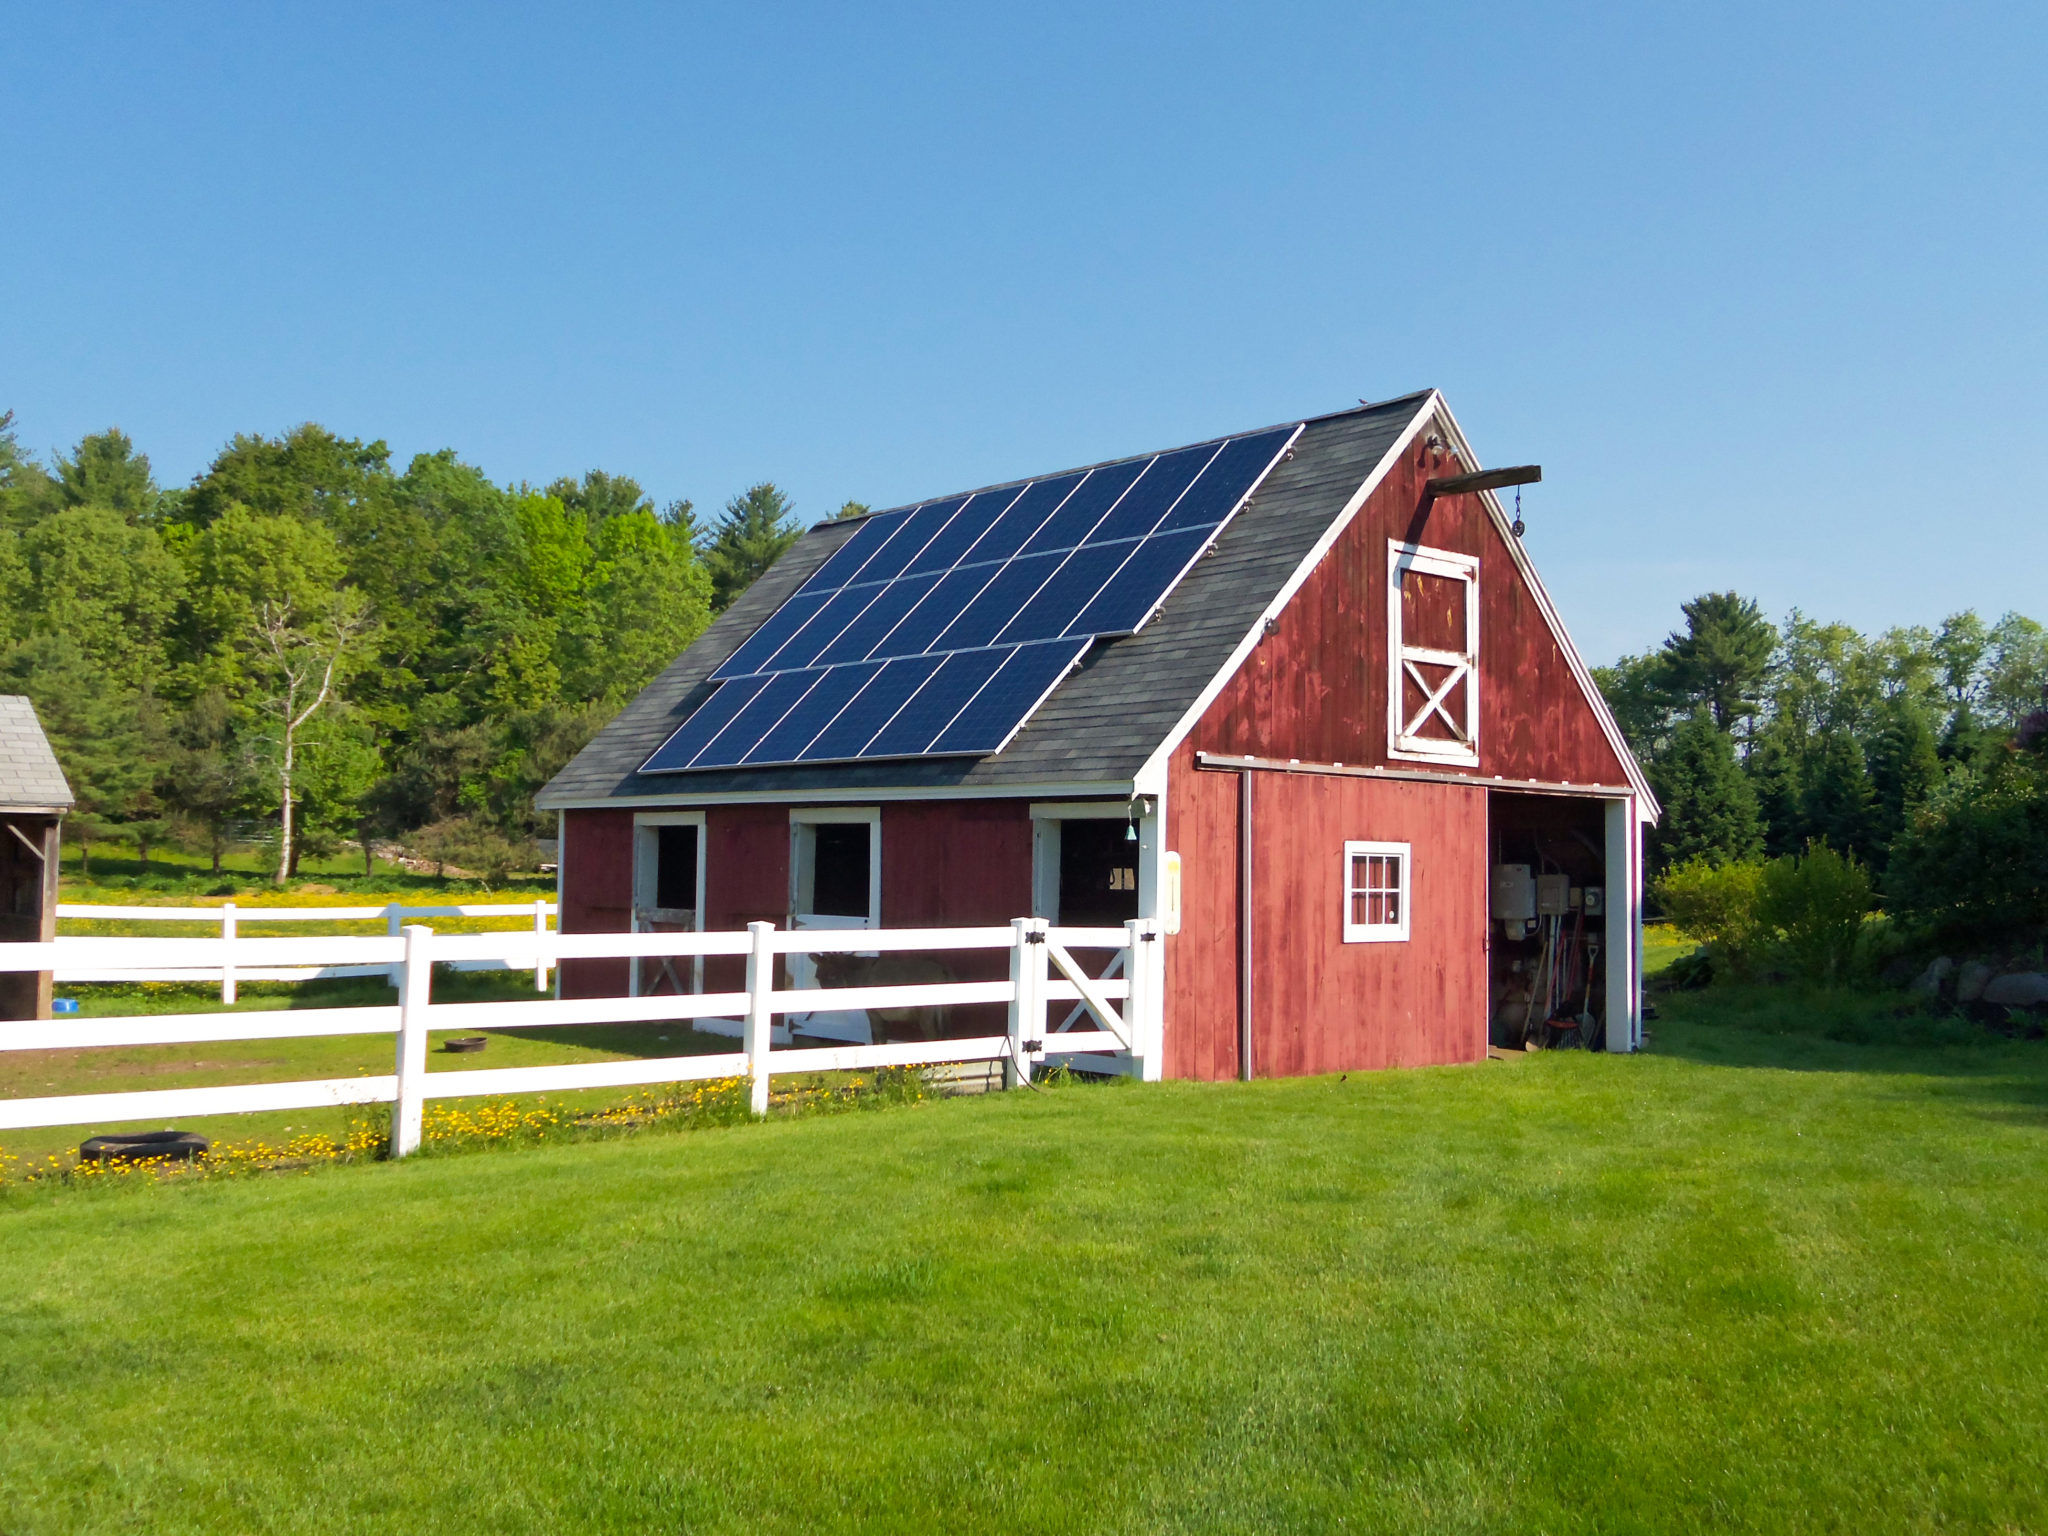 Solar Electric Panels For Homes In Me Nh Ma Revision Energy Electricityhow To Map House Electrical Wiring Allearth Series 20 47kw Dual Axis Tracker Installed At A Home Londonderry New Hampshire This Uses Gps Follow The Sun And Will Produce